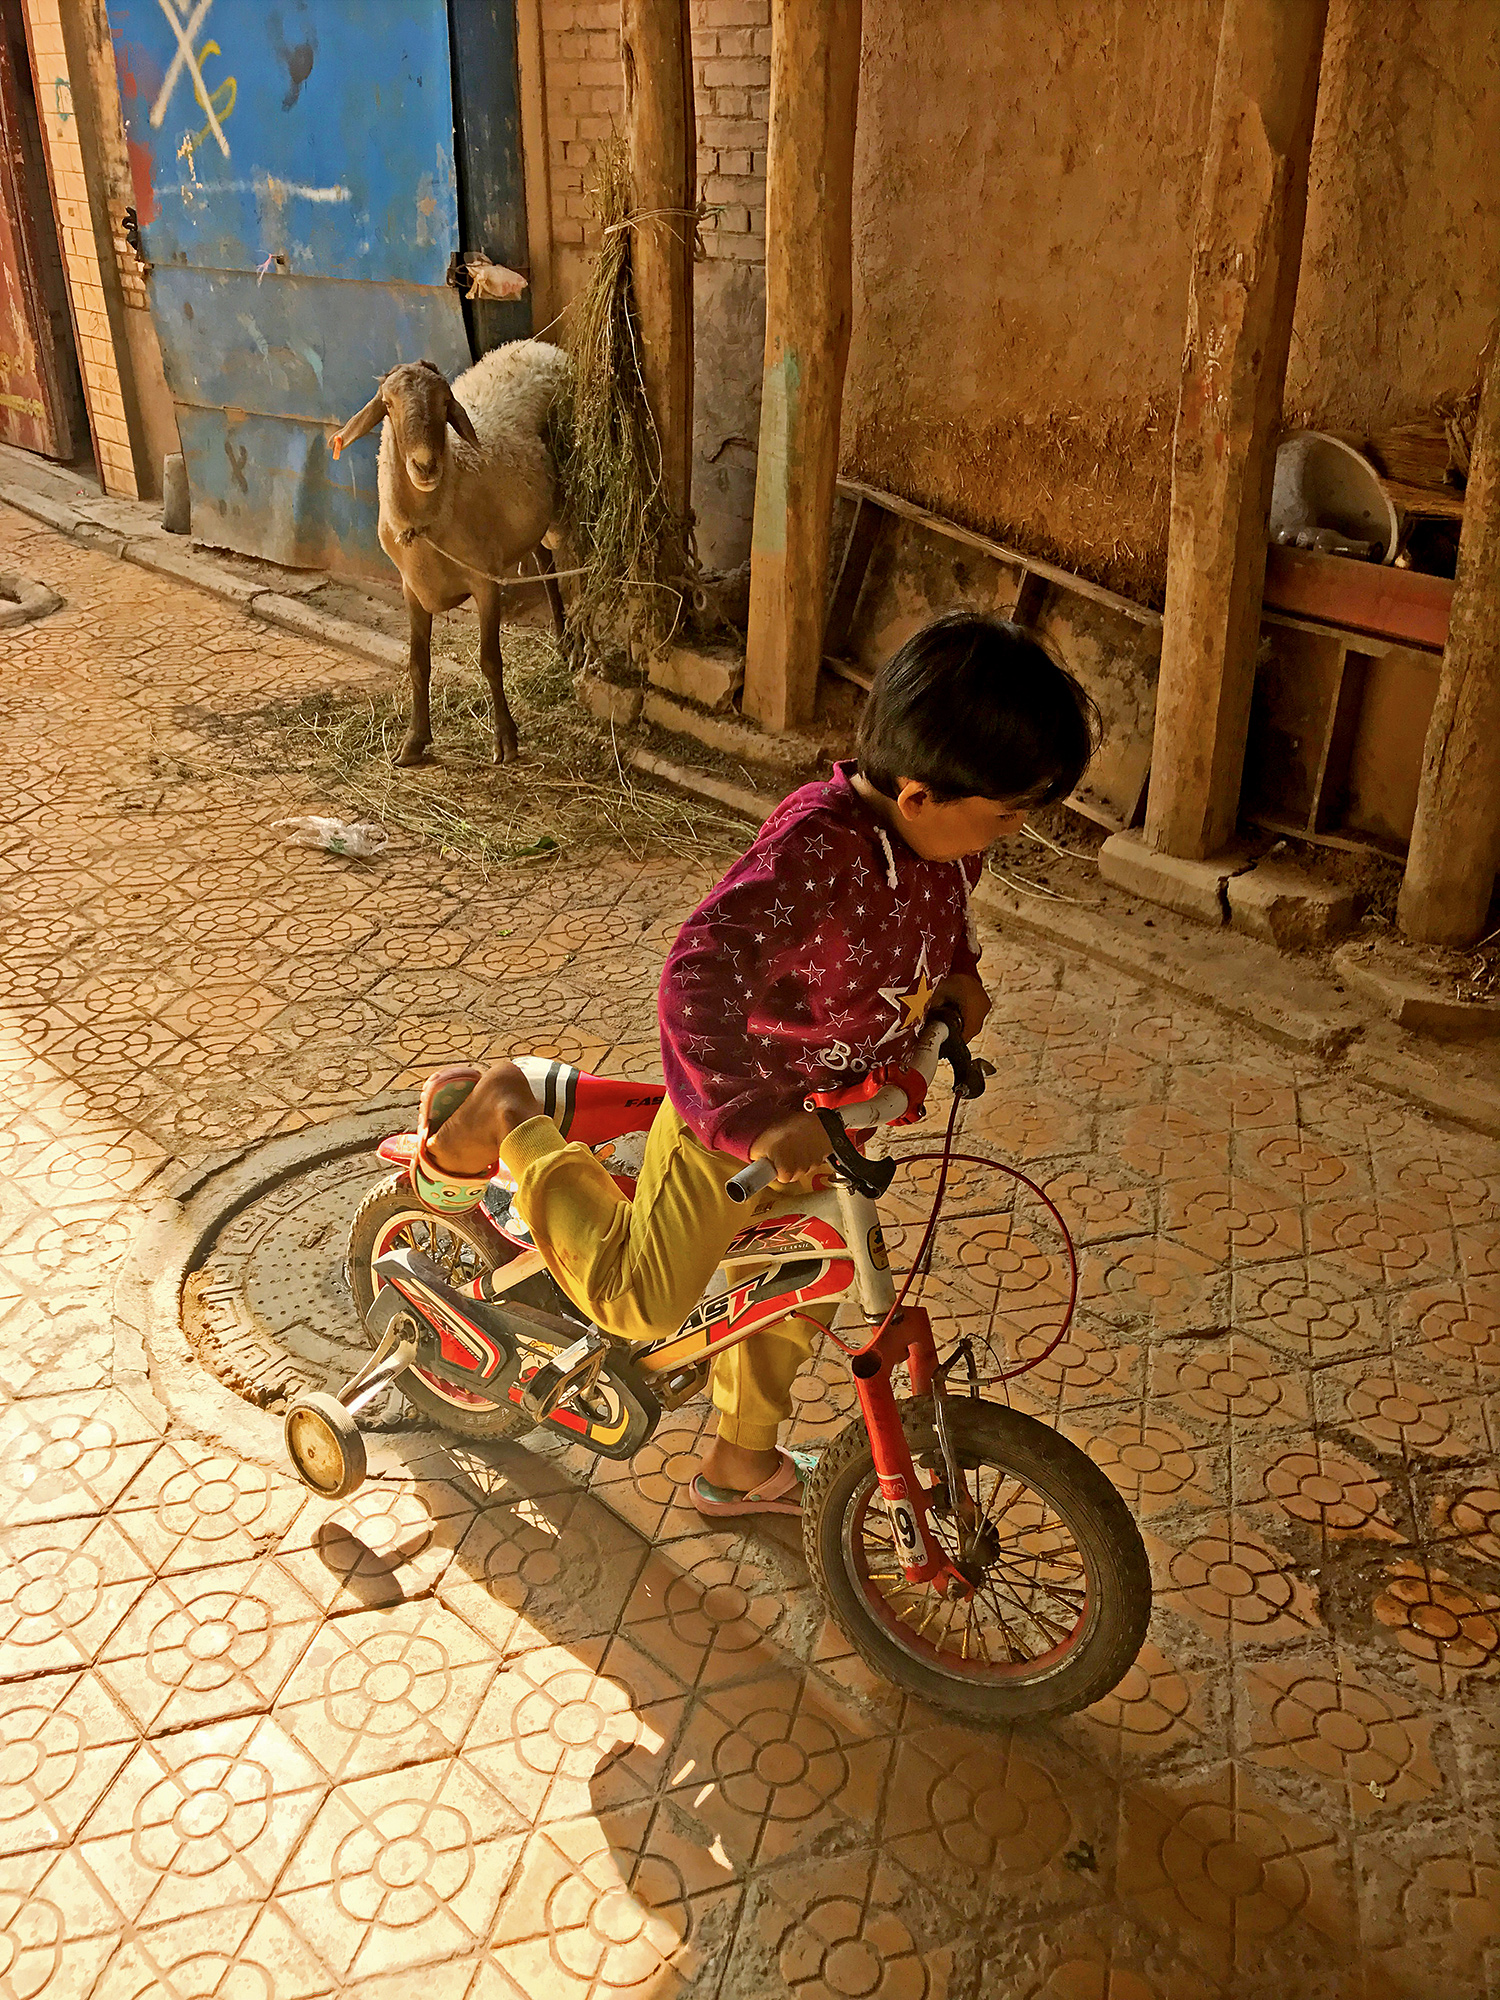 a child rides a bike with training wheels on a brick paved street while a goat watches from the side